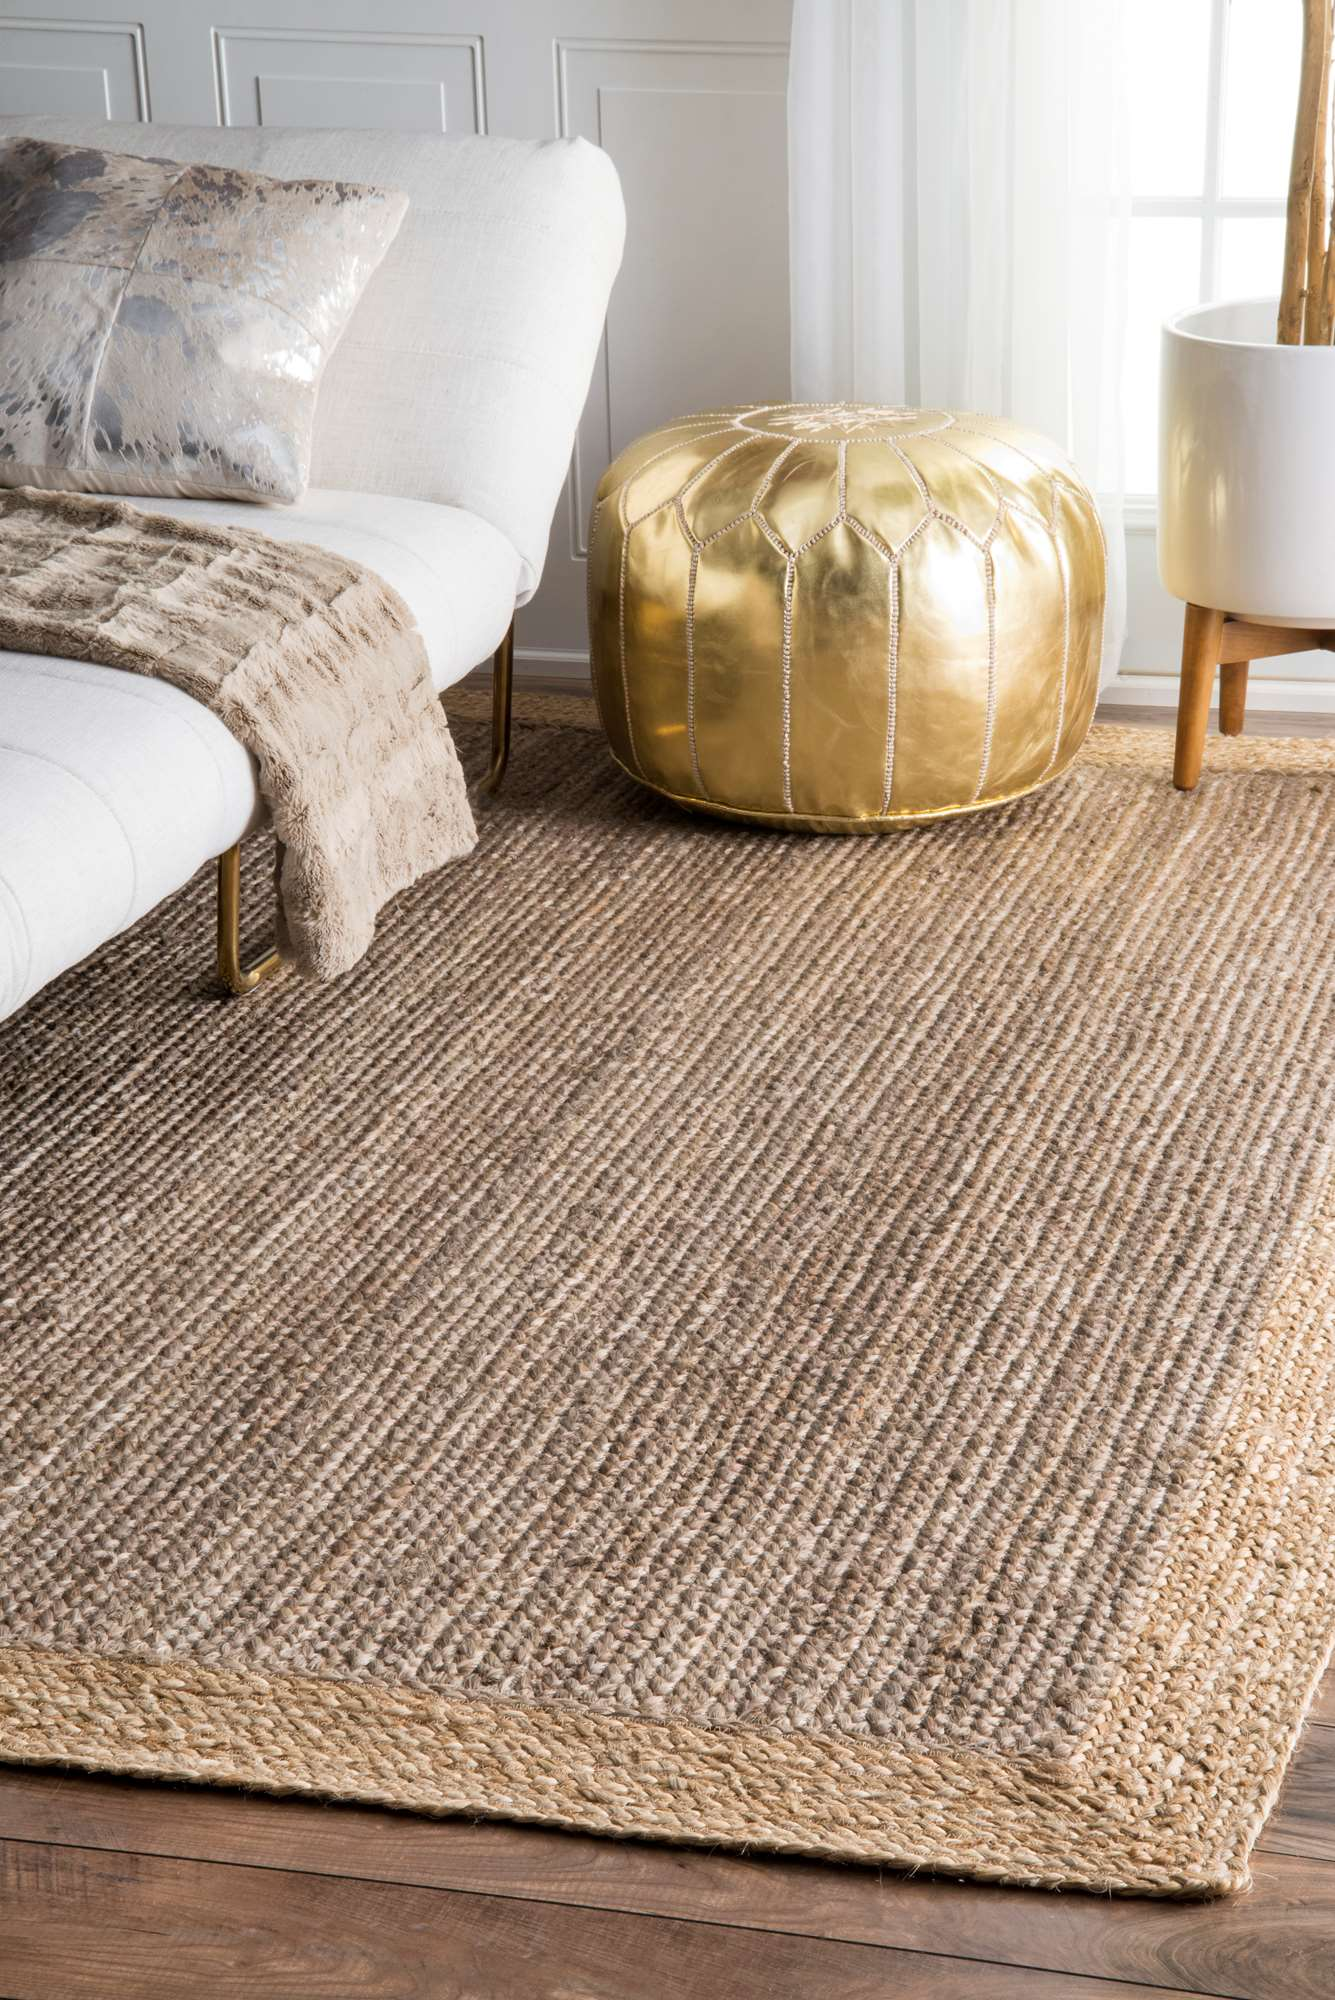 10 Natural Fiber 8x10 Jute Seagrass Rugs Under 300 Apartment Therapy